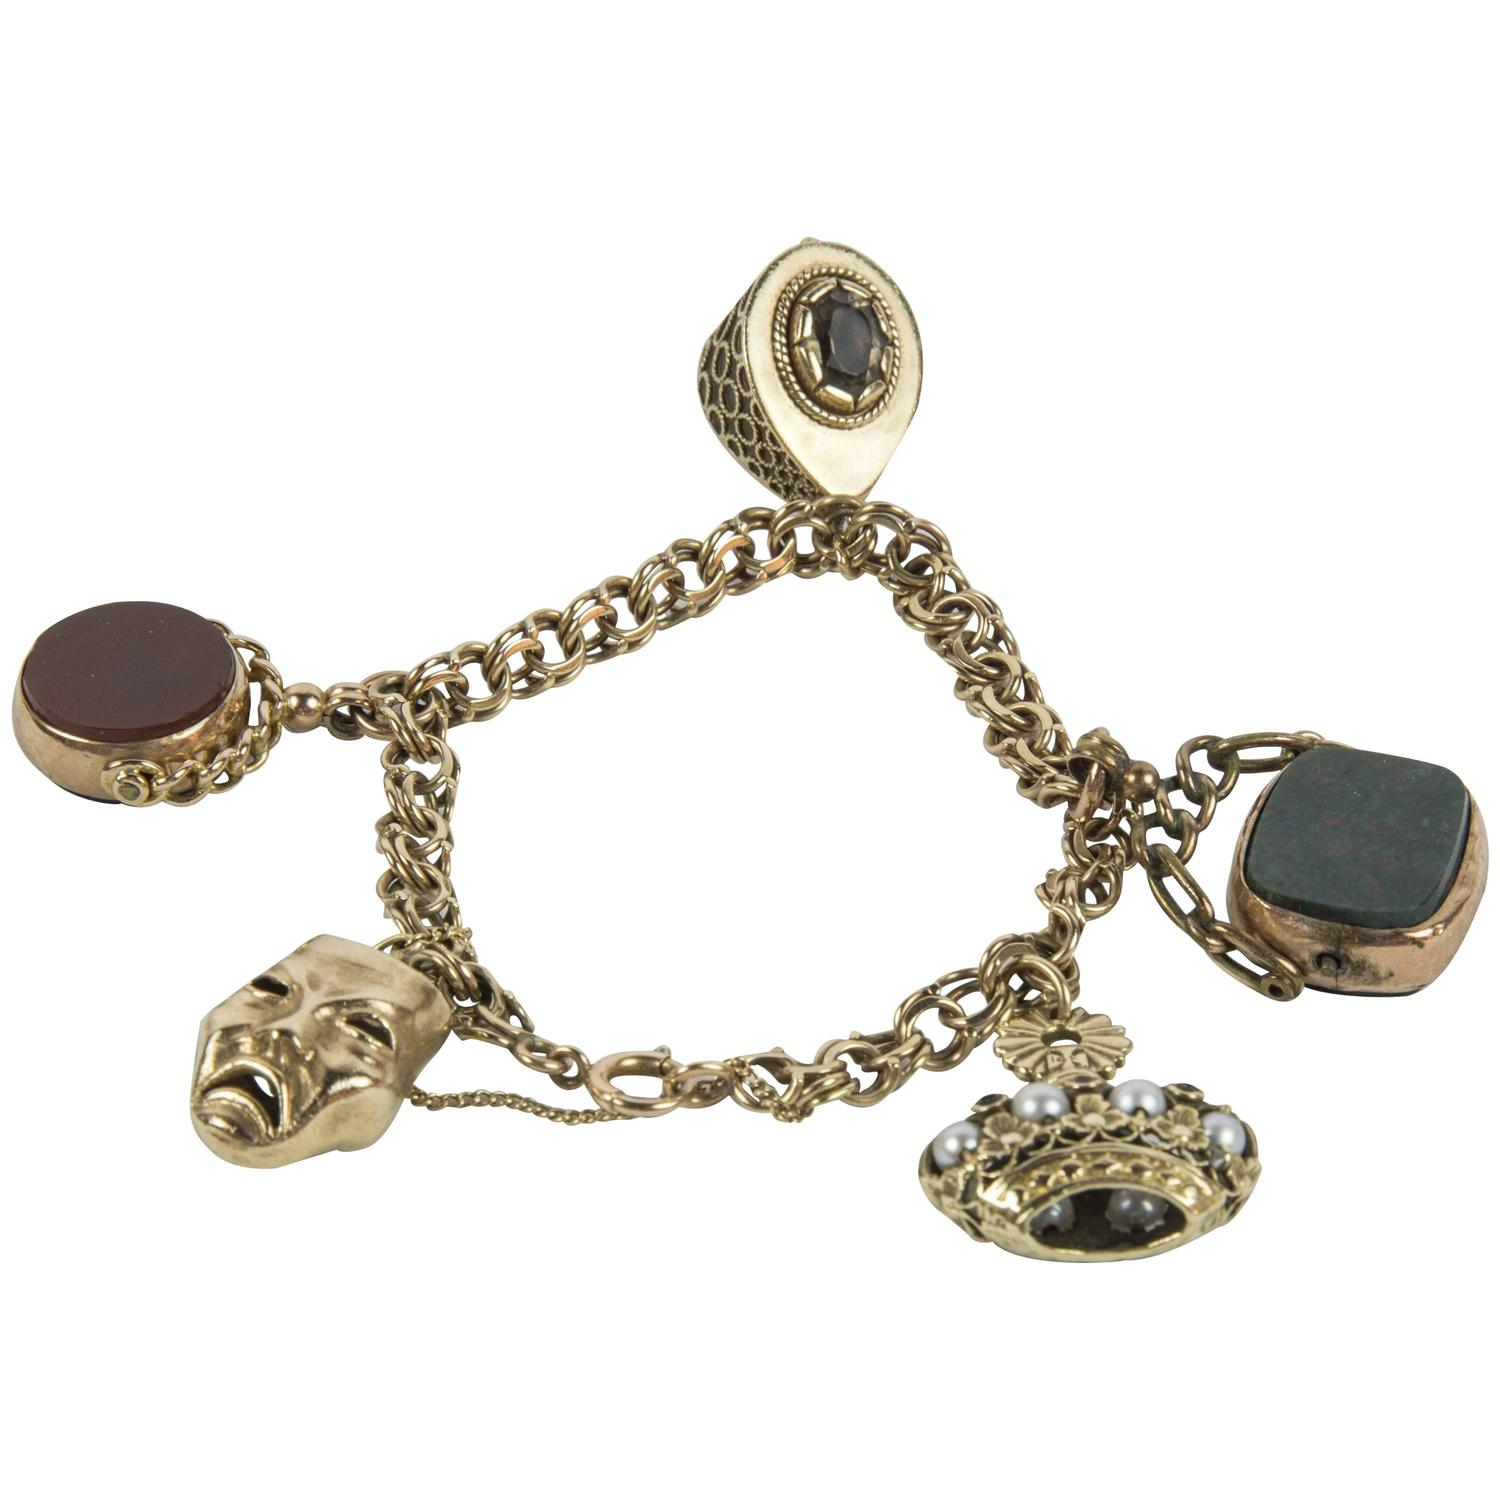 Antique Watch Fobs Gold Charm Bracelet For Sale at 1stdibs